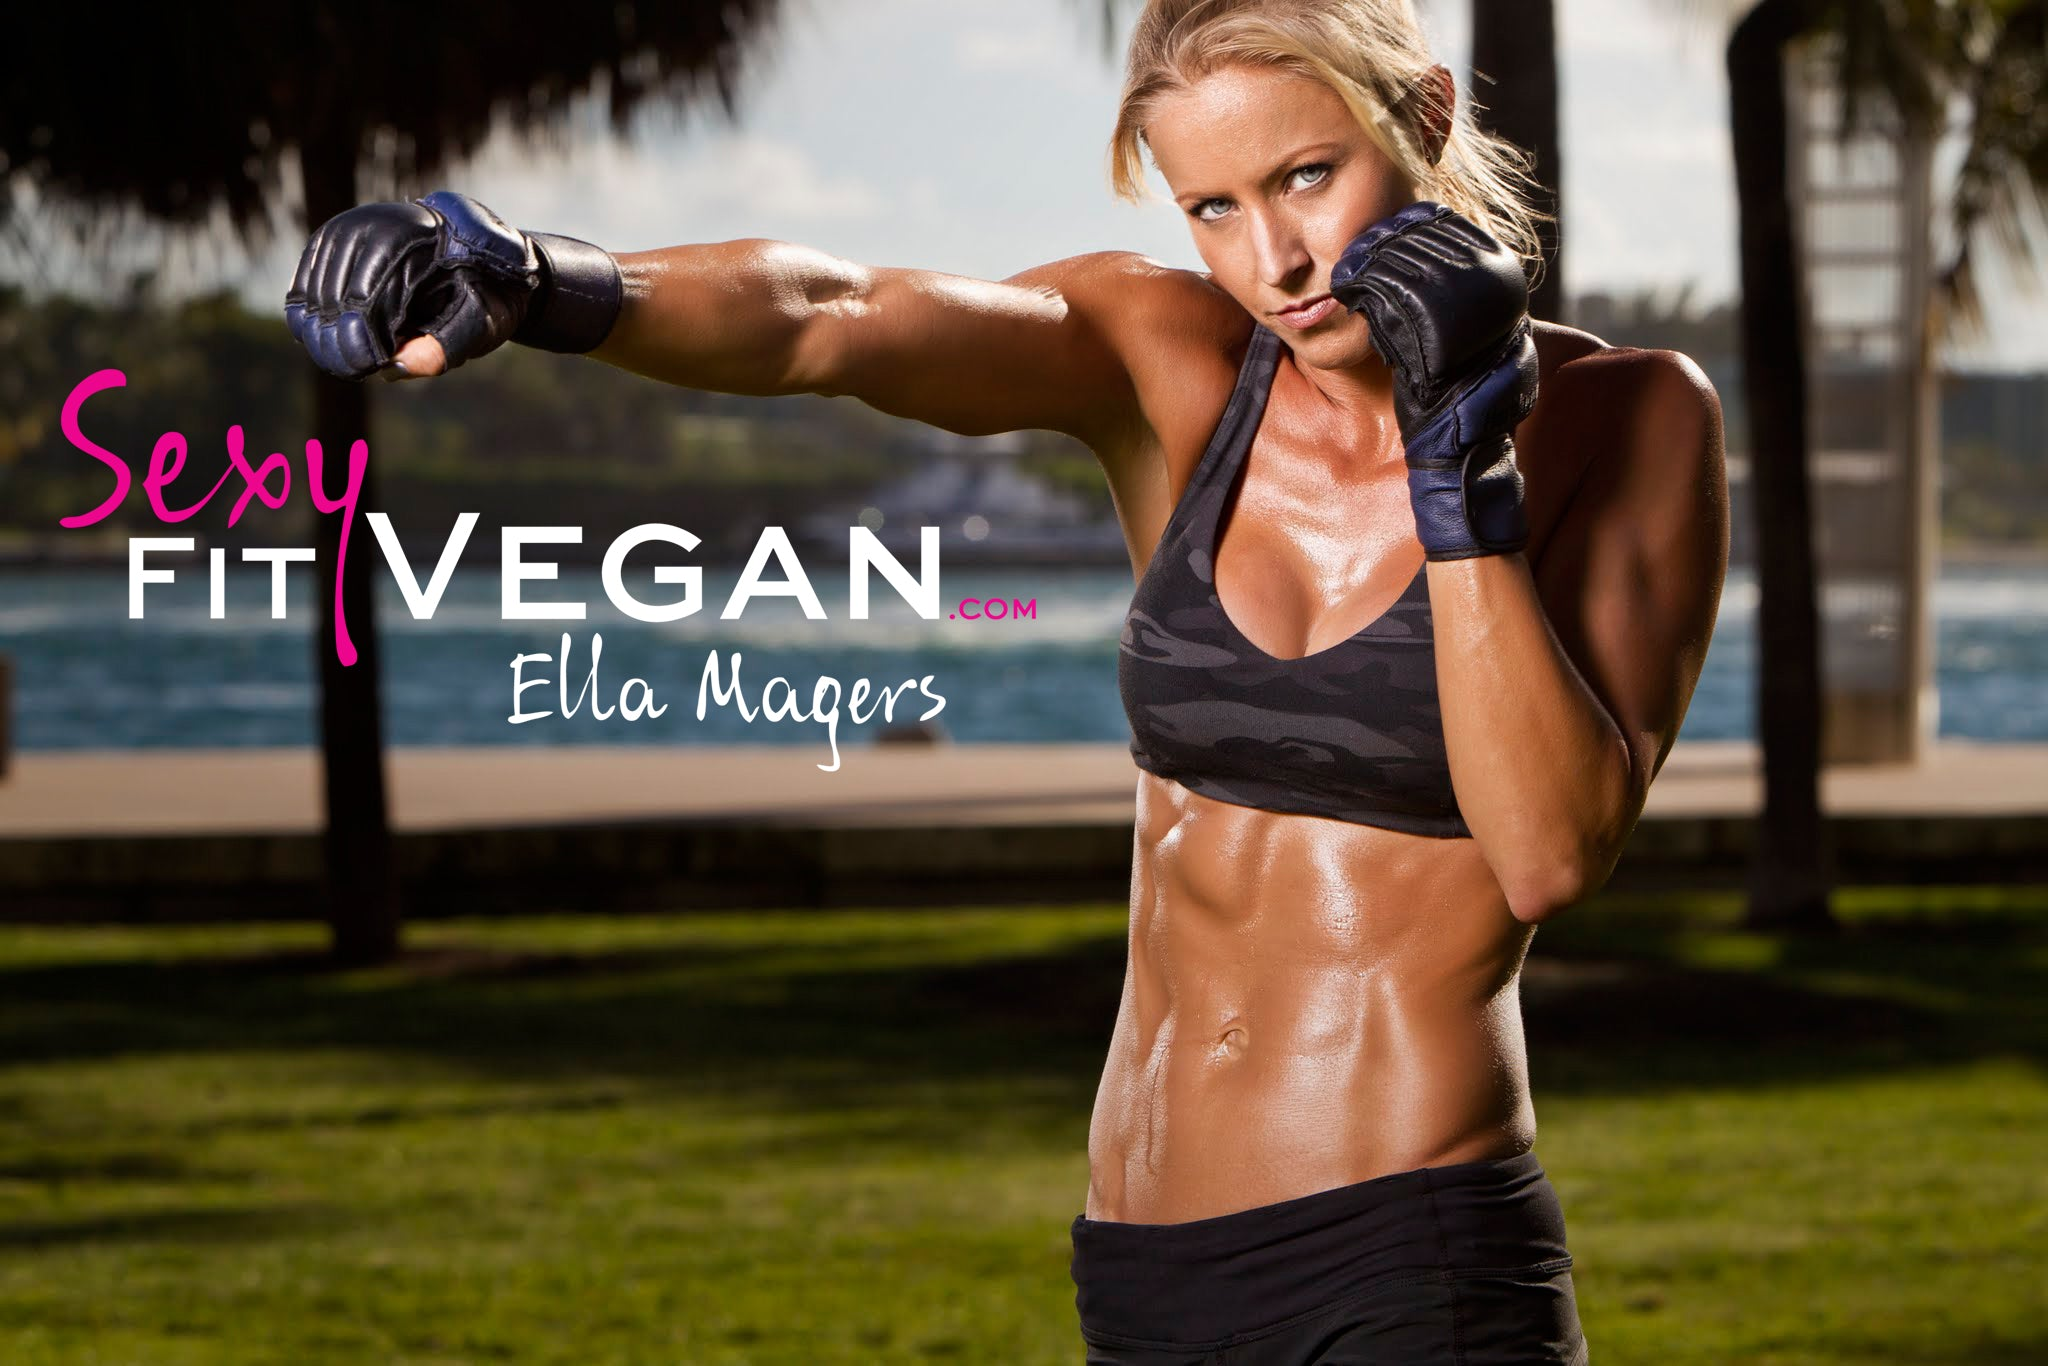 ella magers 6 weeks to sexy abs sexy fit vegan